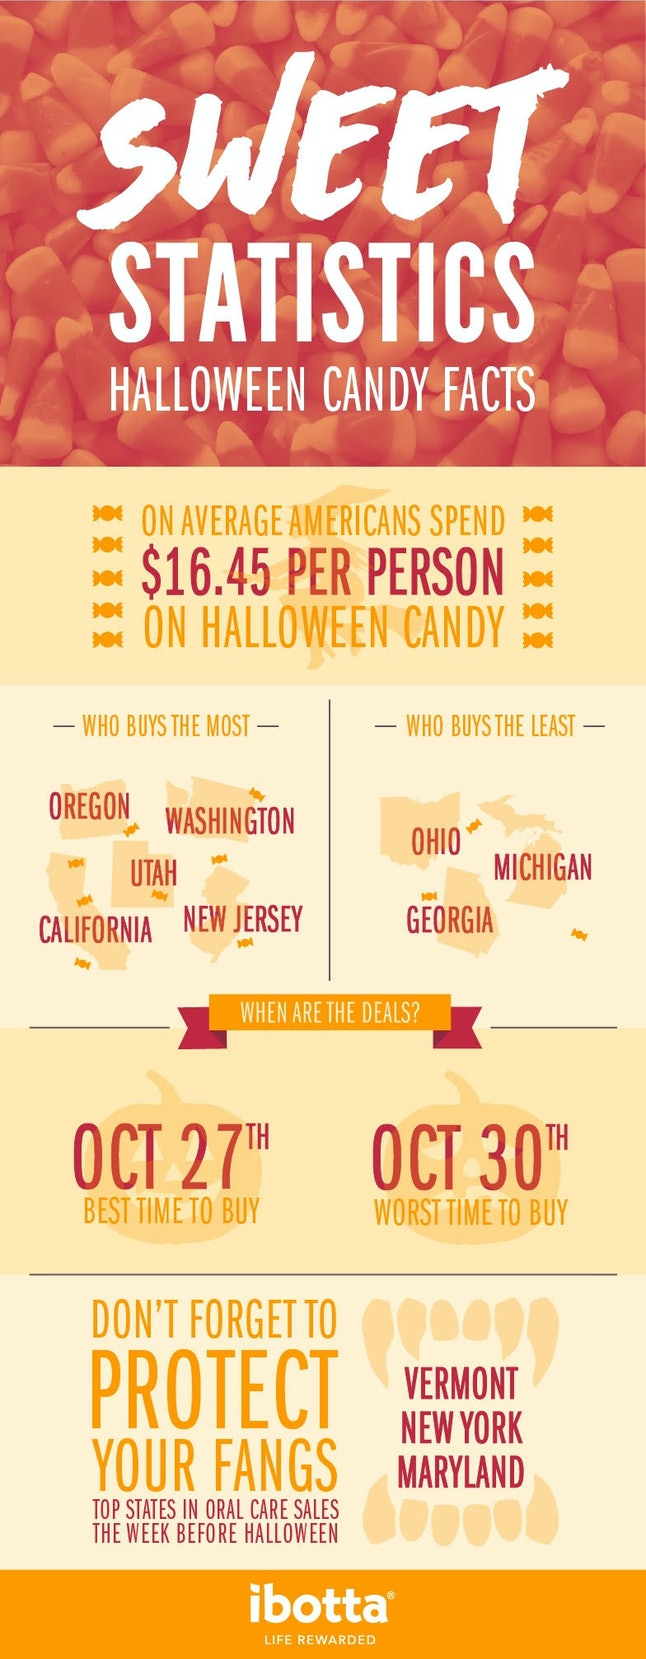 Here's the breakdown on what you spend on candy.